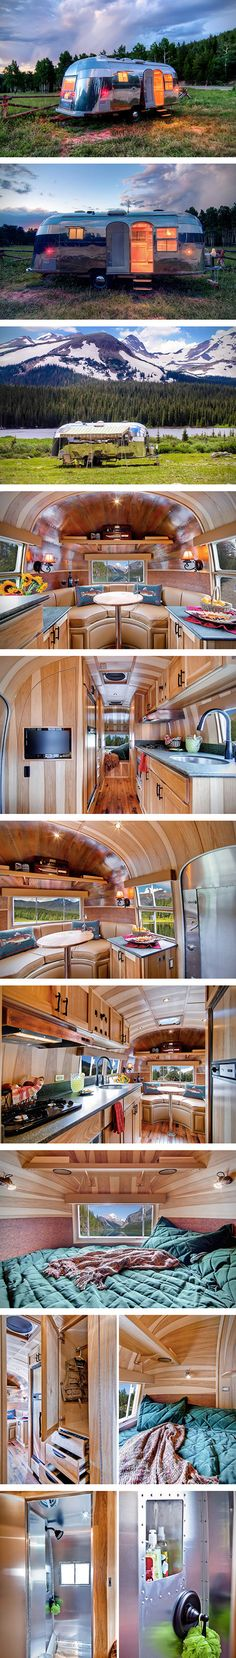 The average person might scoff at the thought of going cross-country in a trailer that was built in 1954, but that all changes when you see this immaculately restored Airstream Flying Cloud. The crew at Timeless Travel Trailers has worked their magic on this onetime hunting and fishing lodge, and you don't have to be a Baby Boomer to find the whole thing pretty glorious. #Wish it! #SpoiledOnline